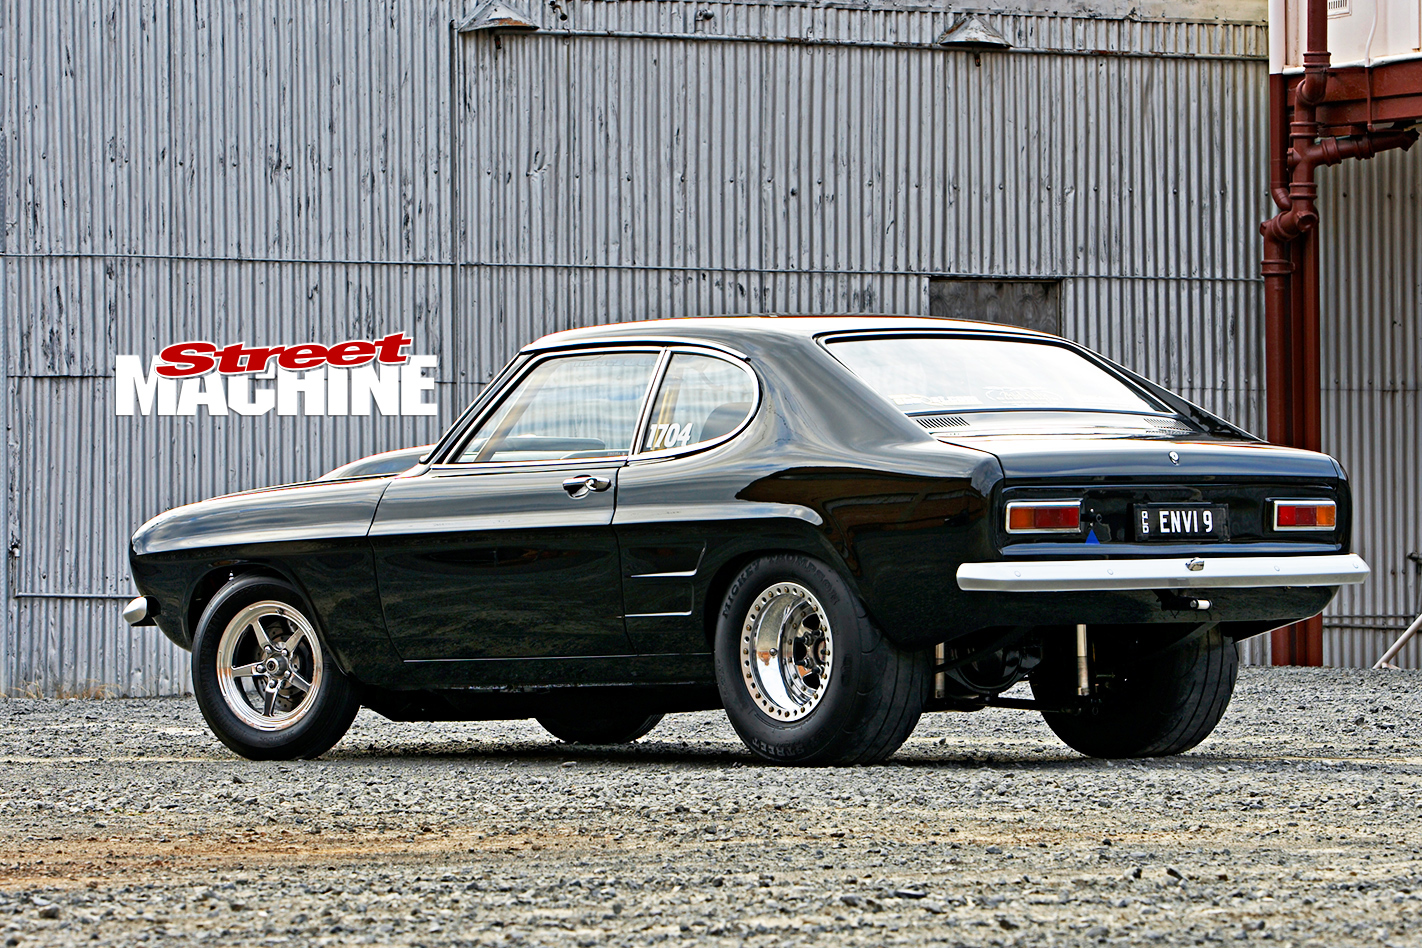 Ford -Capri -rear -side